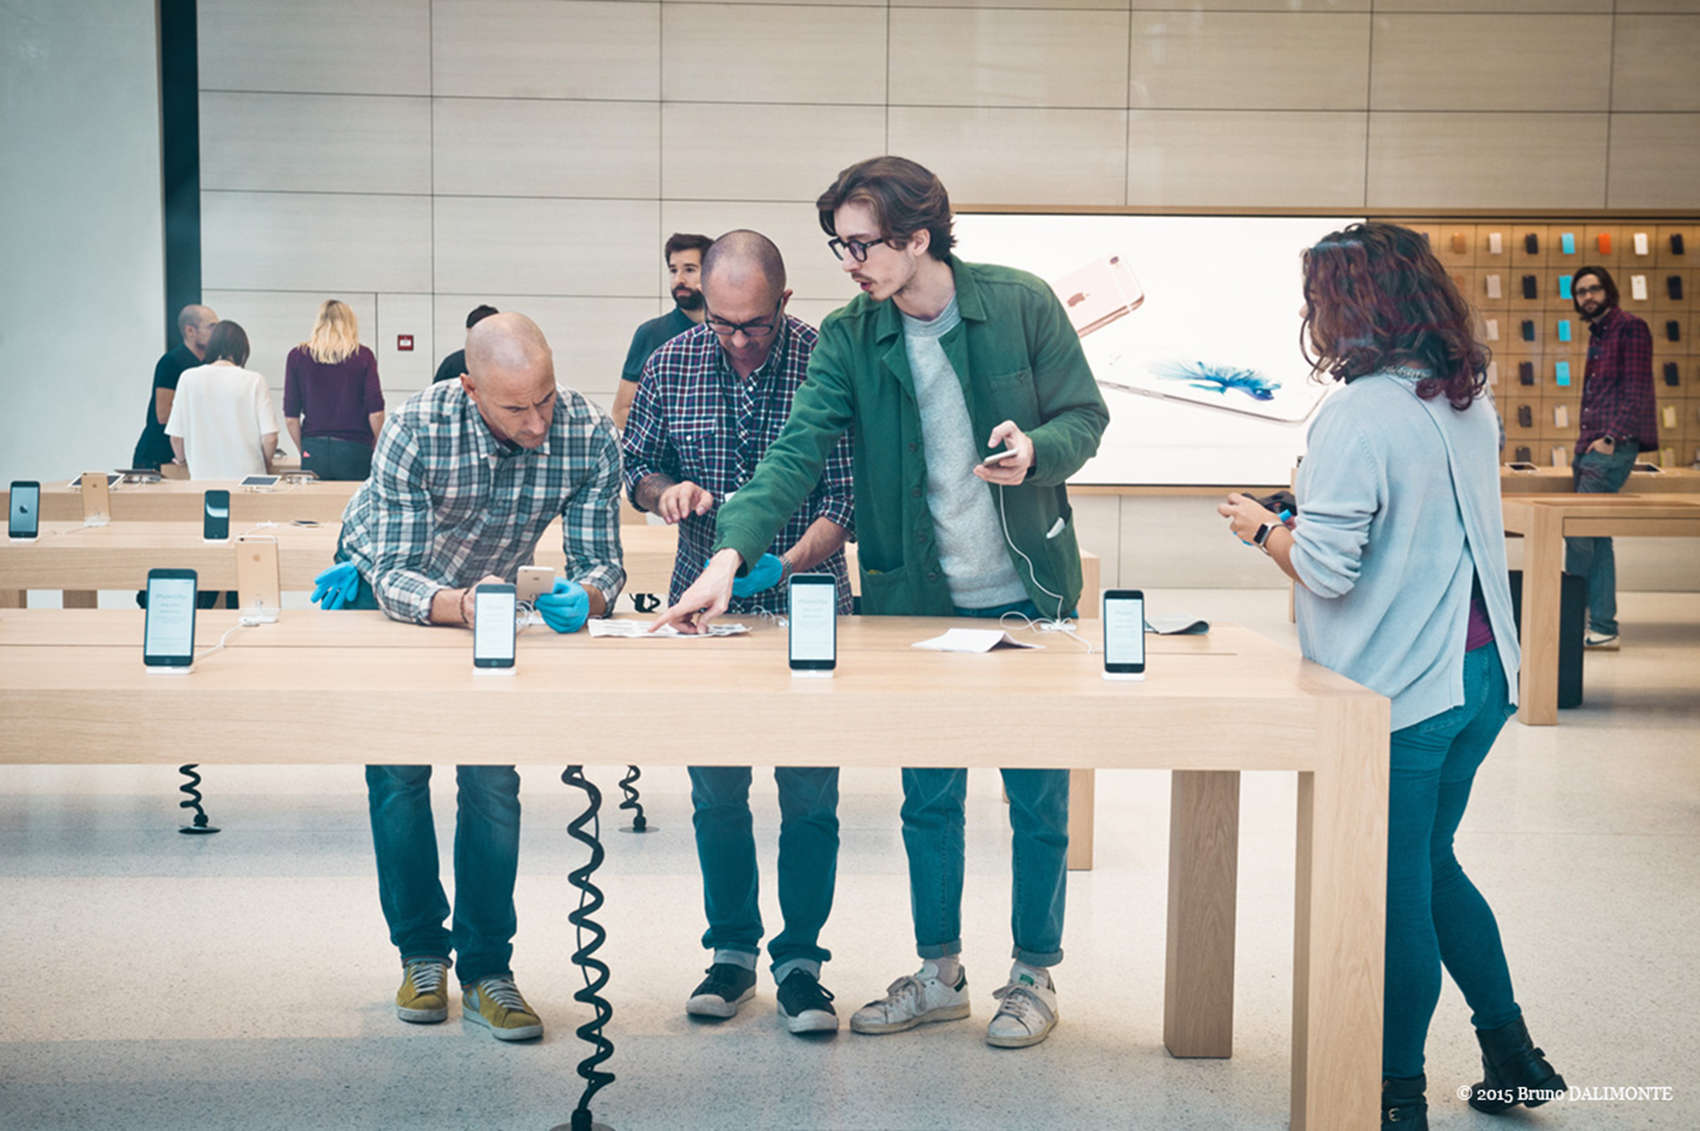 Members of the press were given a preview of the new Apple Store in Brussels, which official opens Saturday.